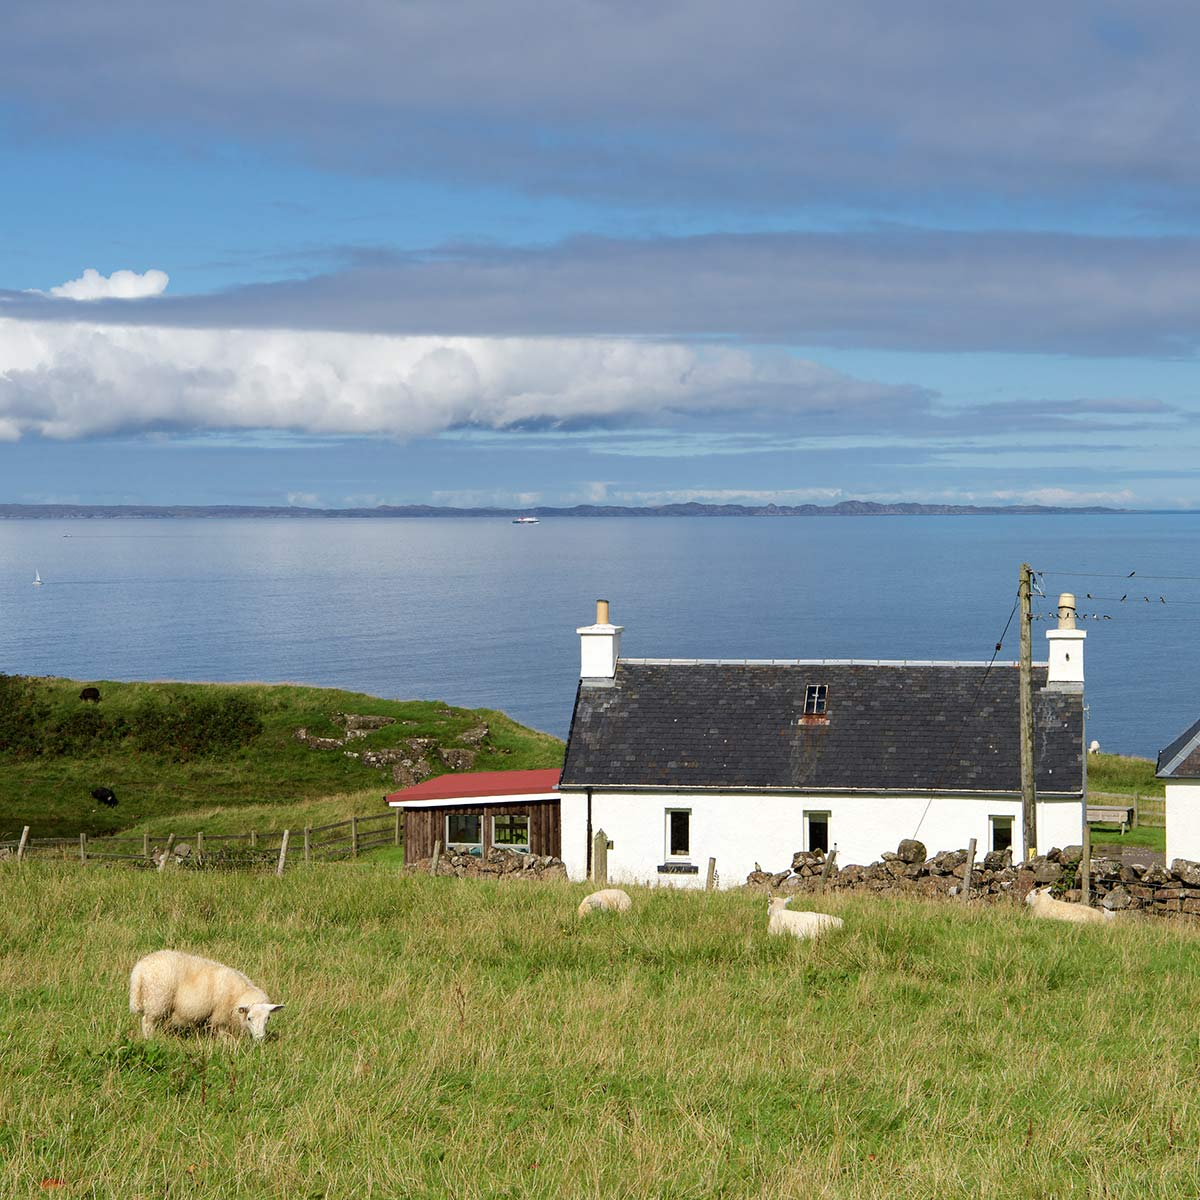 Treshnish, Mull, self-catering Duill Cottage sea view